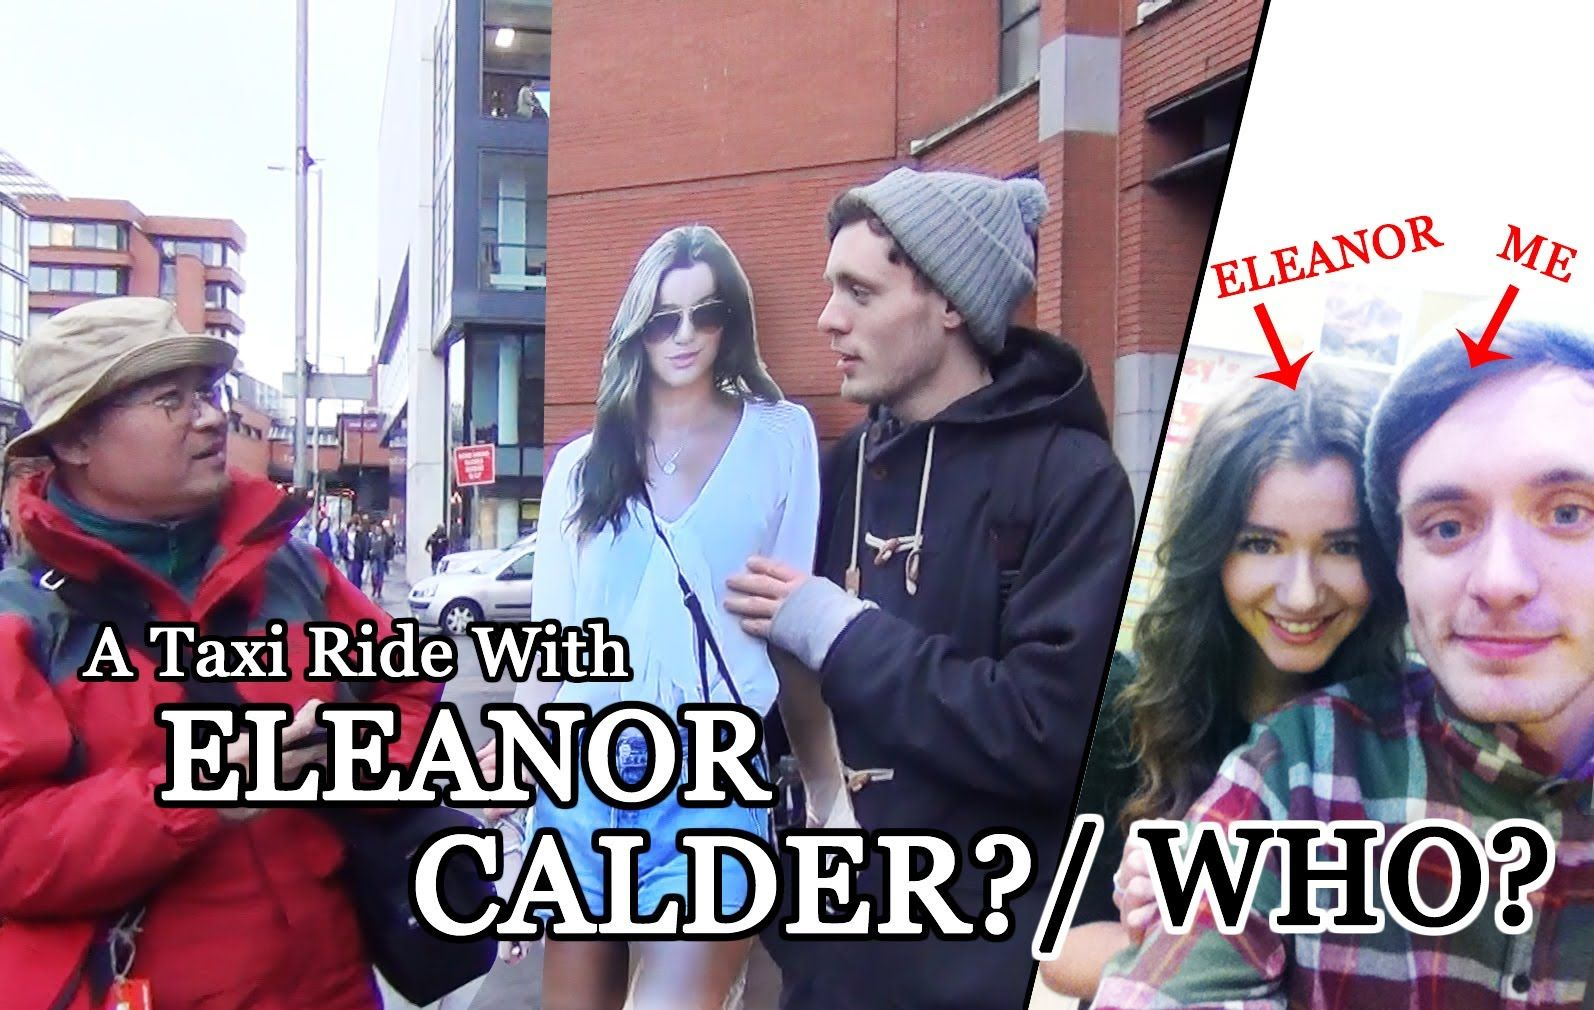 This dude is literally the luckiest guy EVER!! I want to meet Eleanor frickin Calder toooo!!!